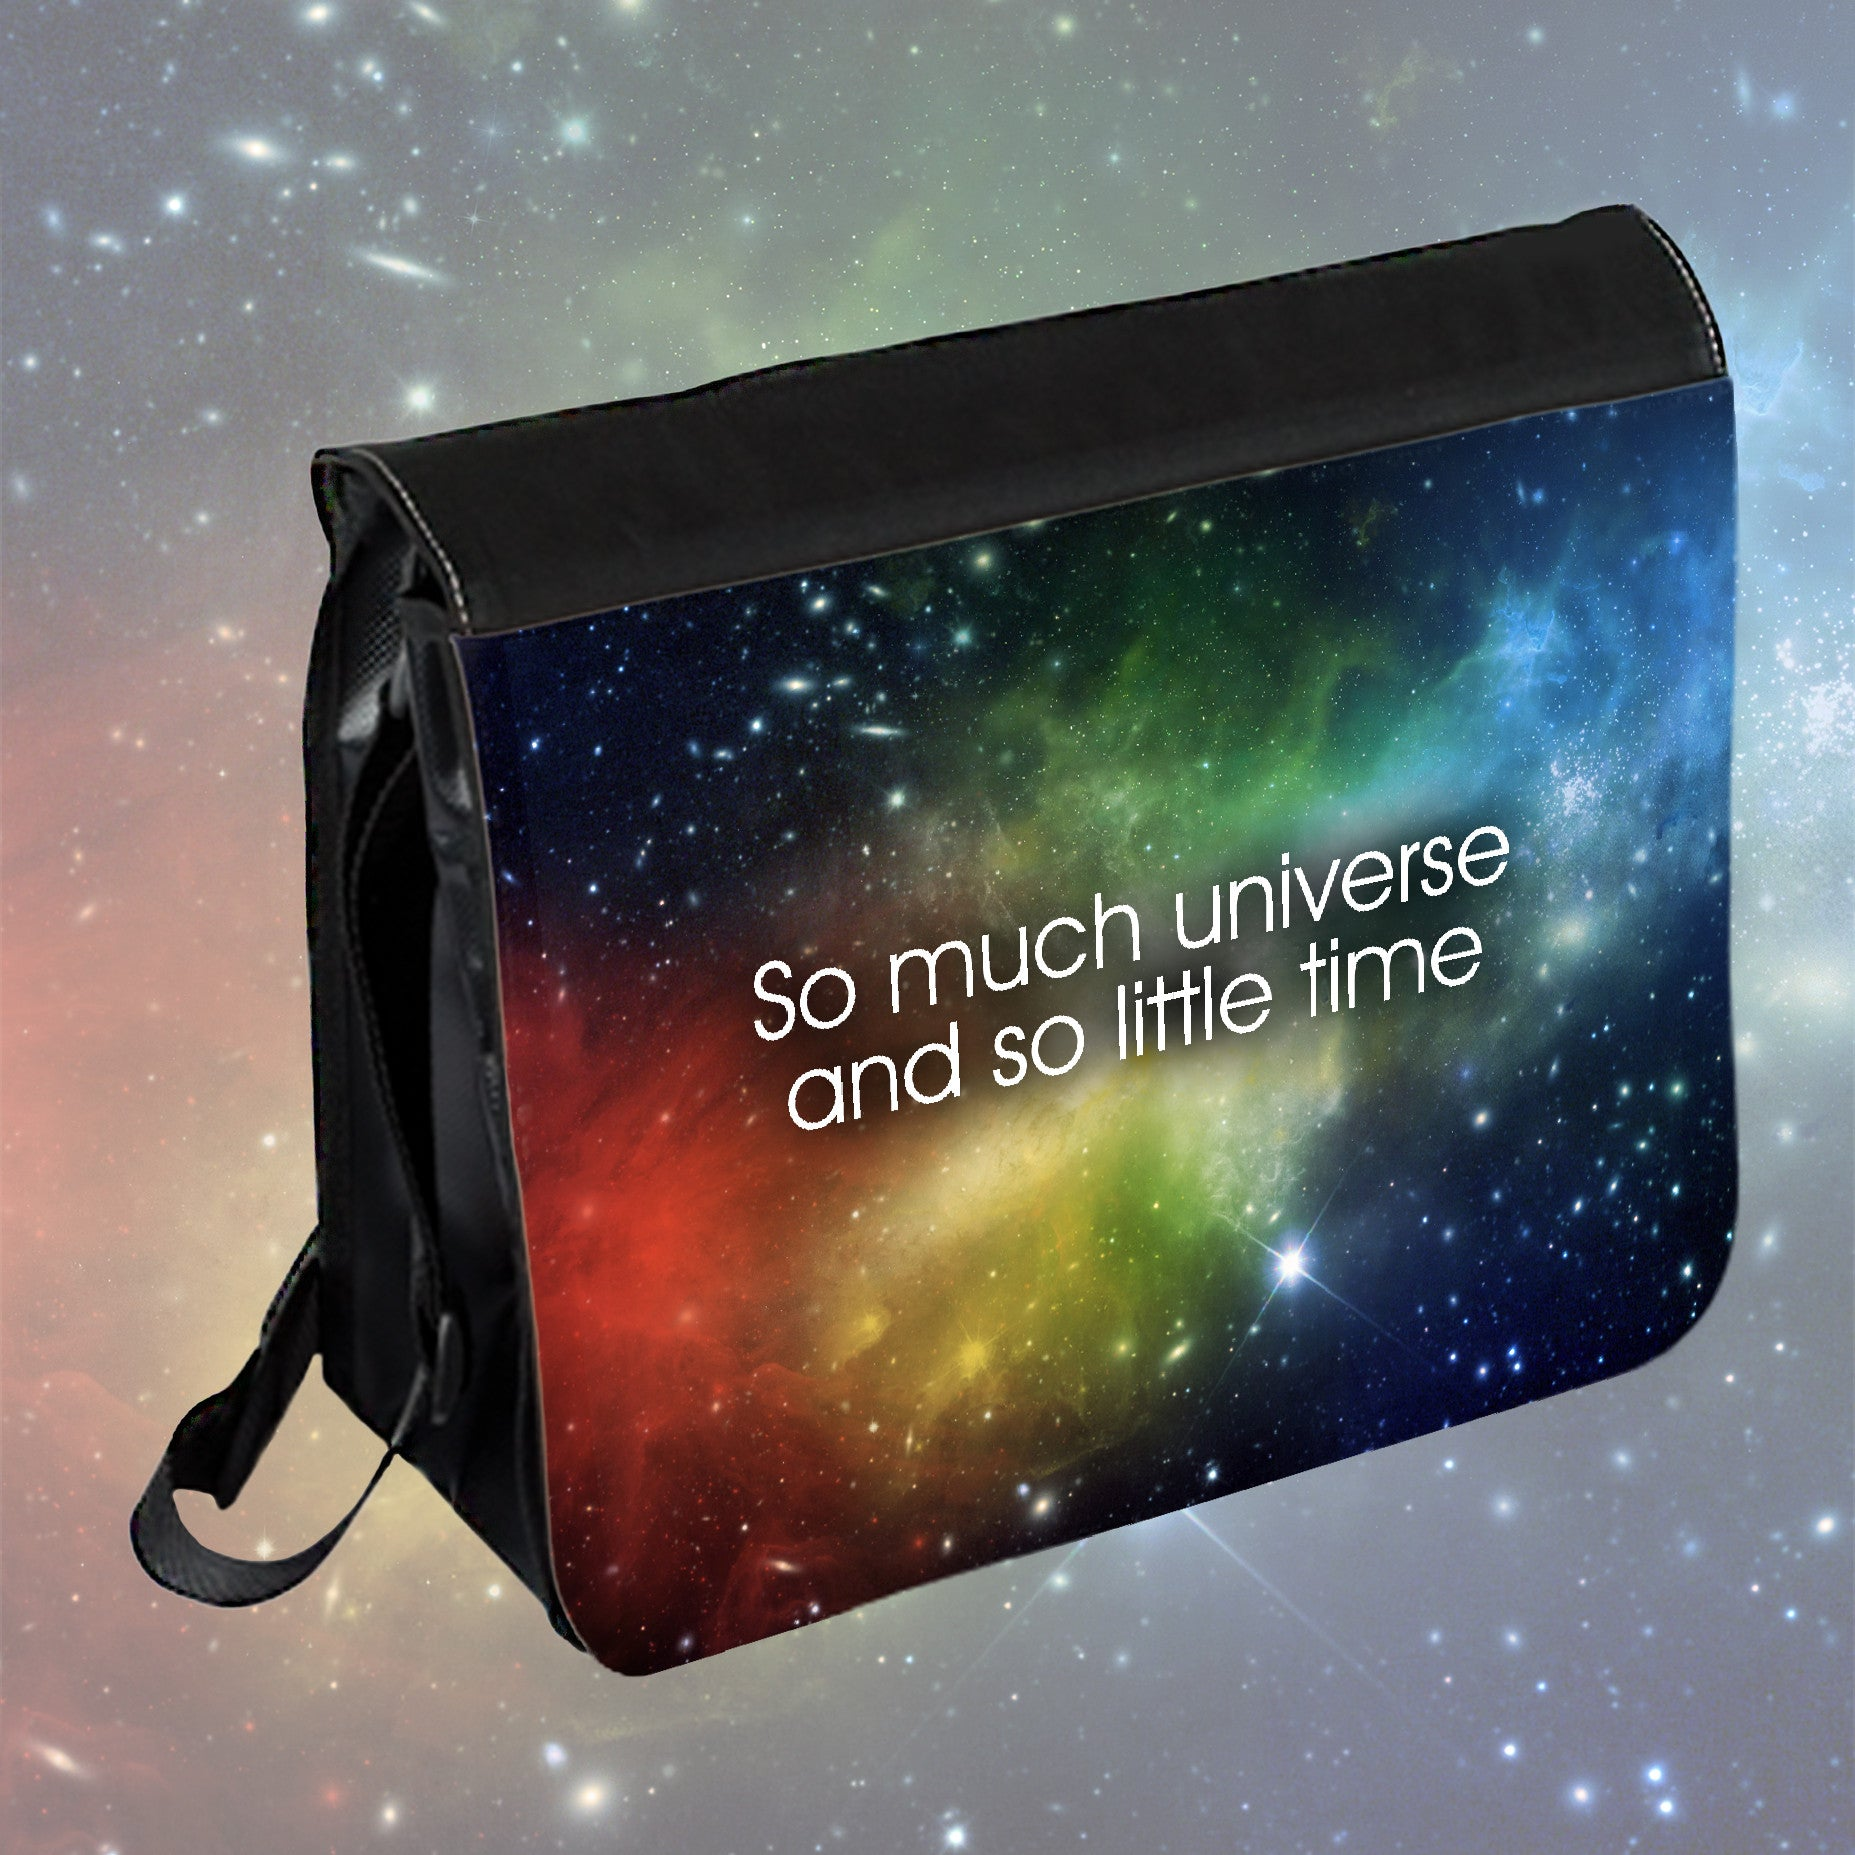 Creative Designed Personalised Design On Front Of Messenger Bag For Kids And Adults For School, Work, Leisure Activities, Travel And Mettings